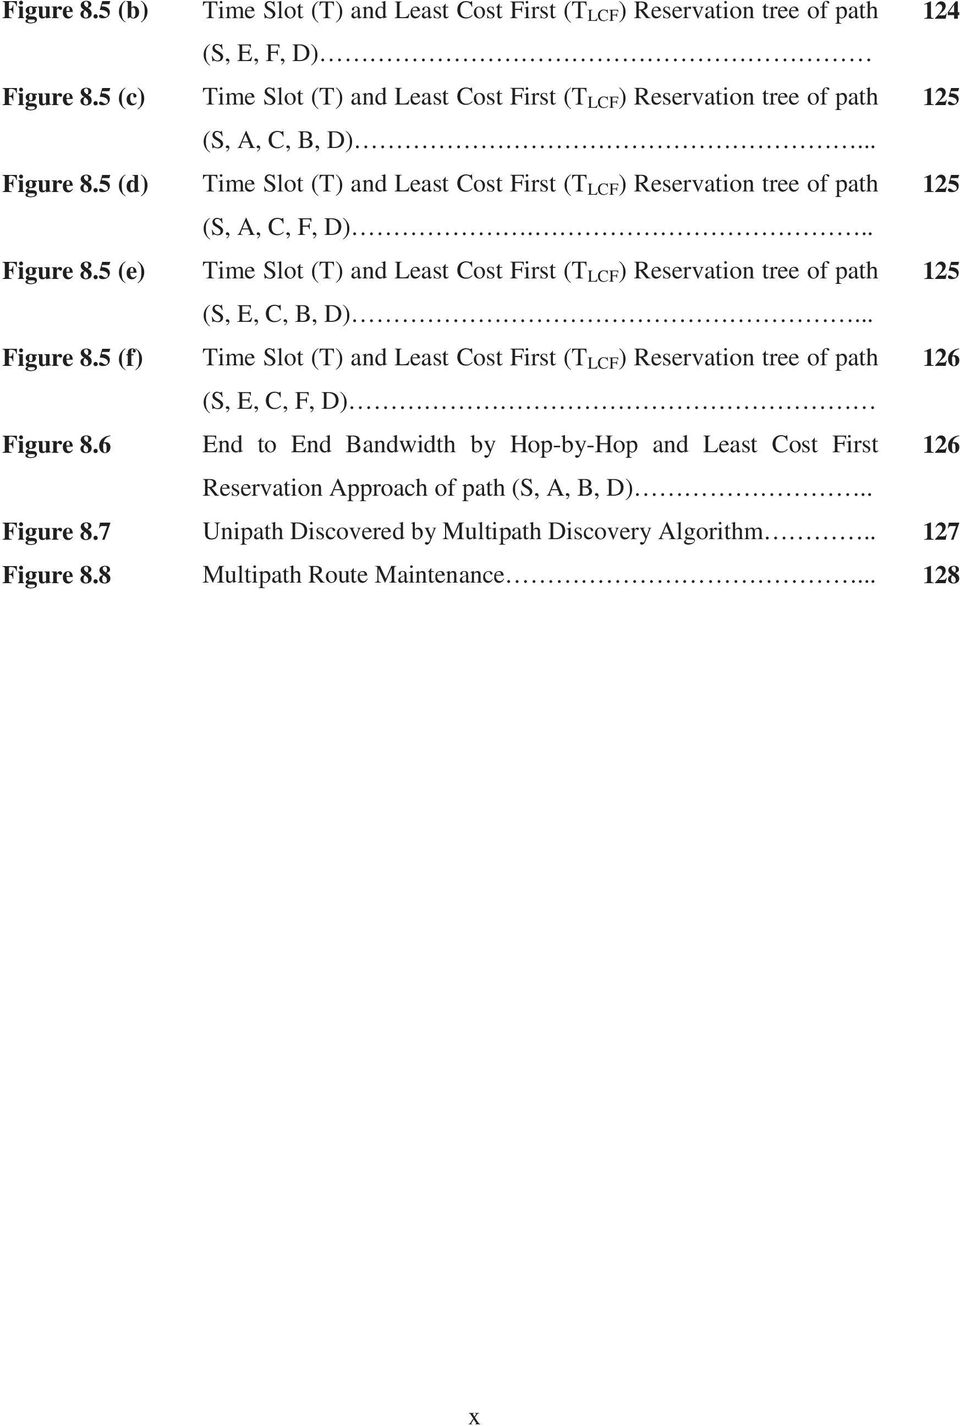 5 (d) Time Slot (T) and Least Cost First (T LCF ) Reservation tree of path 125 (S, A, C, F, D)... Figure 8.